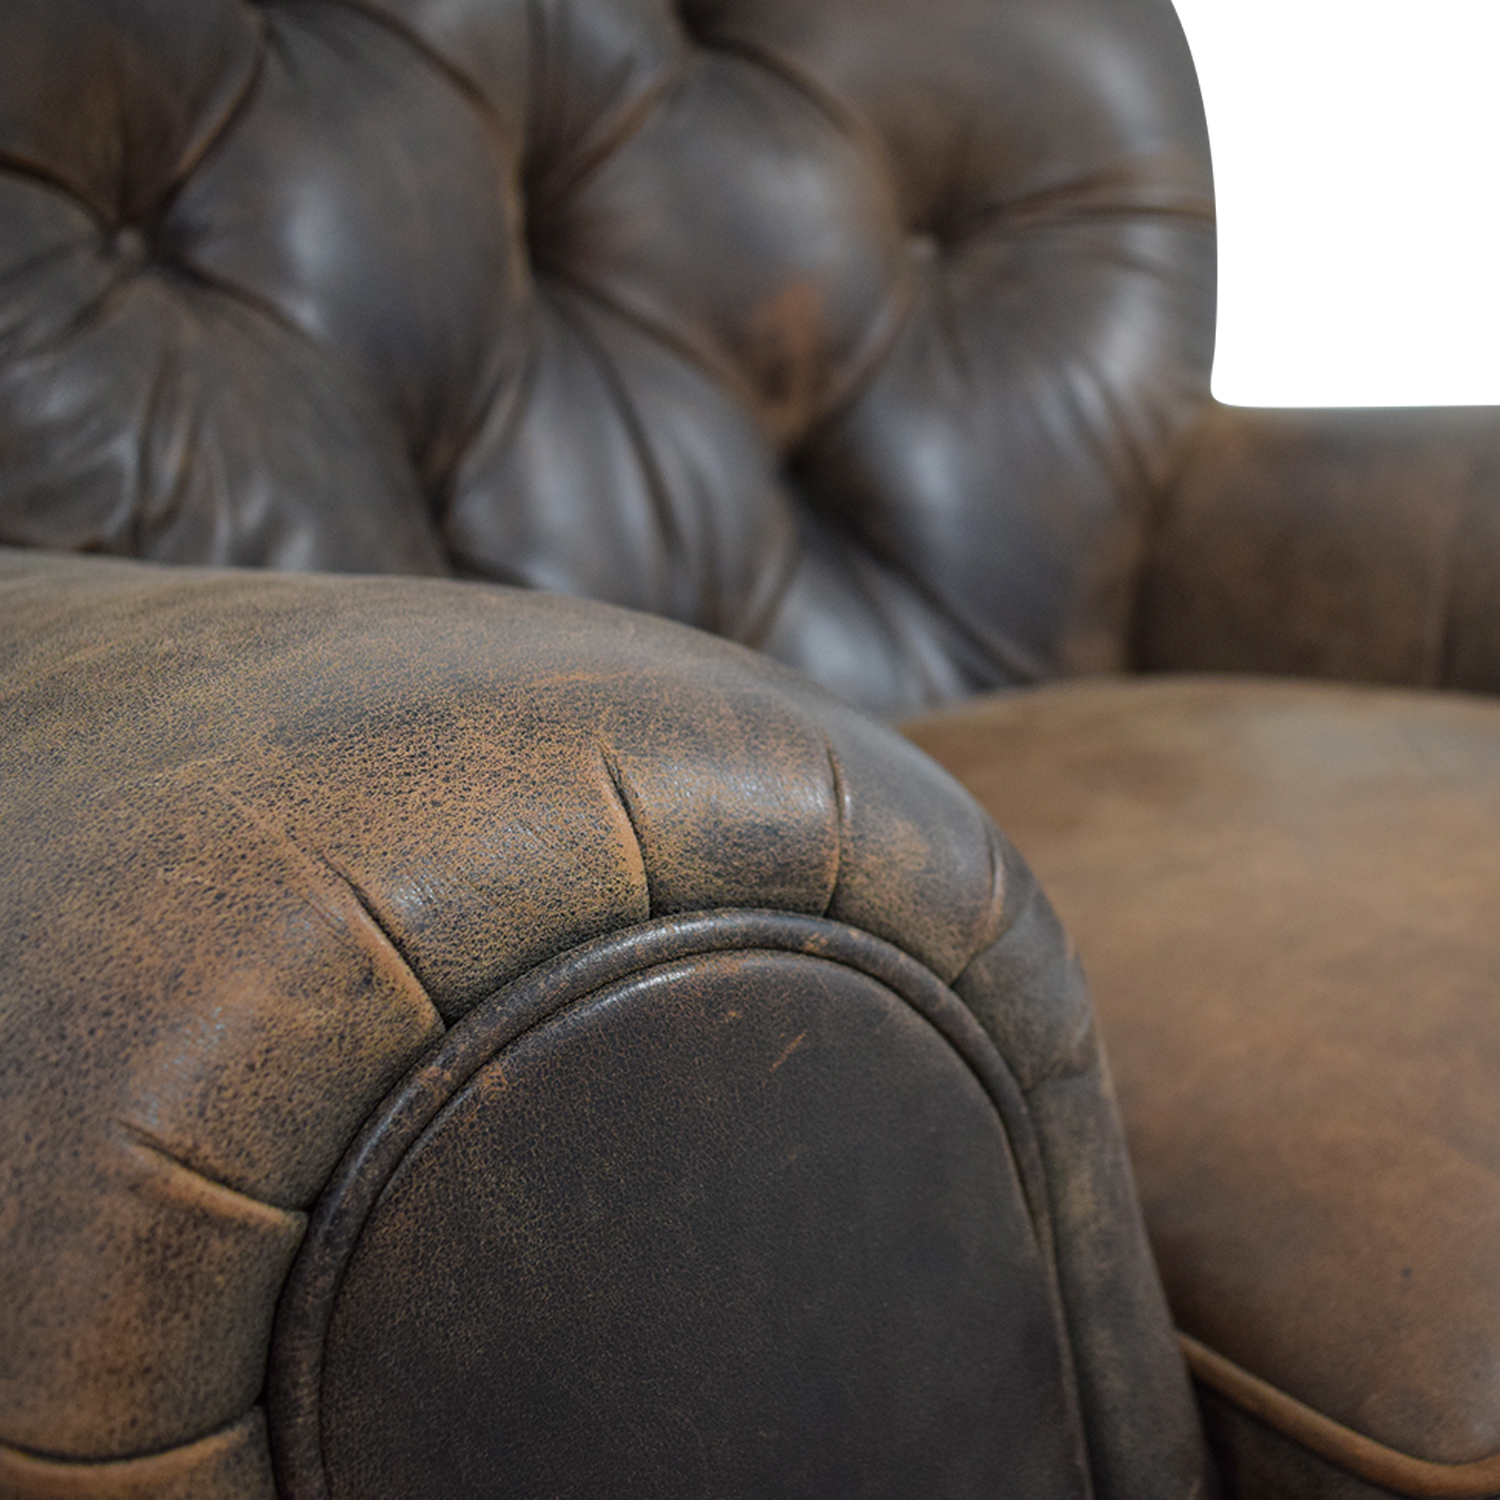 Pleasing 88 Off Restoration Hardware Restoration Hardware Churchill Brown Leather Tufted Nailhead Chair Chairs Ocoug Best Dining Table And Chair Ideas Images Ocougorg